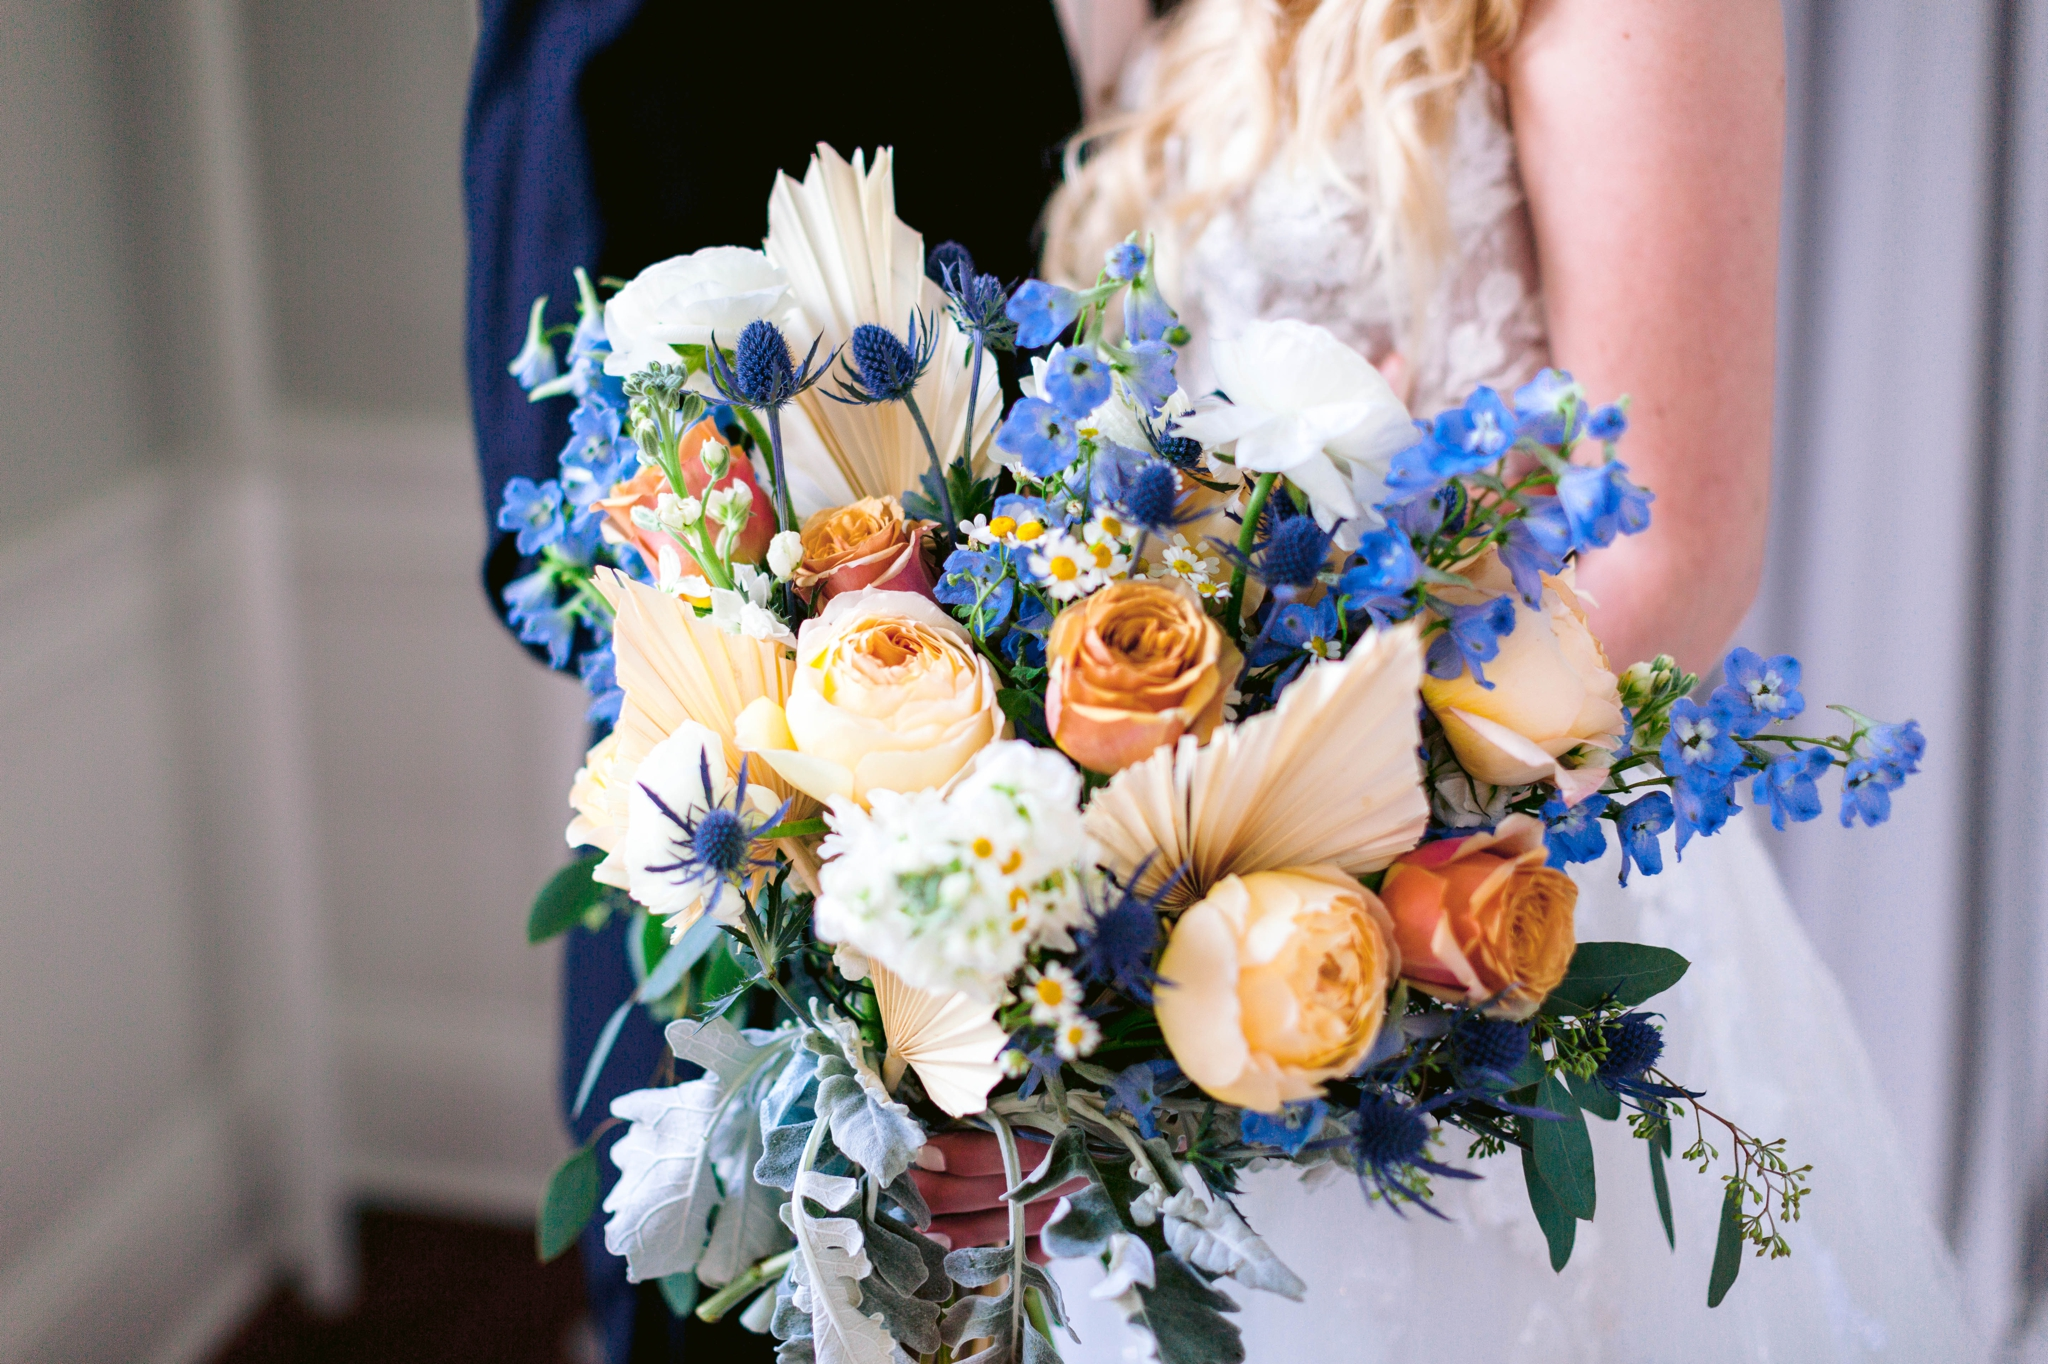 Bridal bouquet with orange, white and blue flowers - Bride and Groom Fine art indoor natural light photography - black tucks and a ballgown wedding dress in an old estate - martha stewart weddings - style me pretty - Dusty Blue Wedding Inspiration - fine art photography - Honolulu, Oahu, Hawaii Wedding Photographer - johanna dye